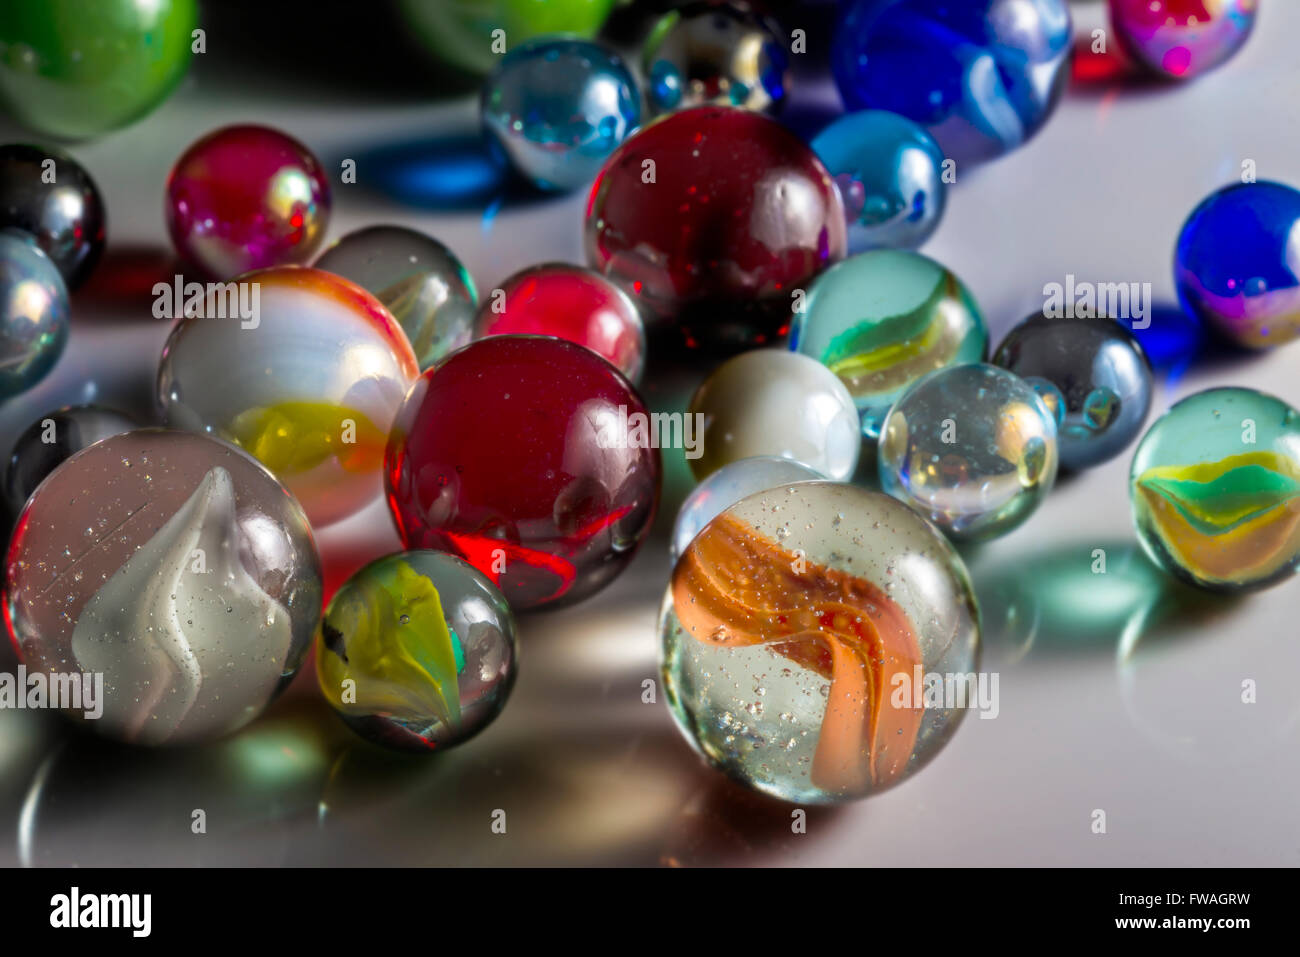 Closeup view of translucent marbles on a shiny surface - Stock Image